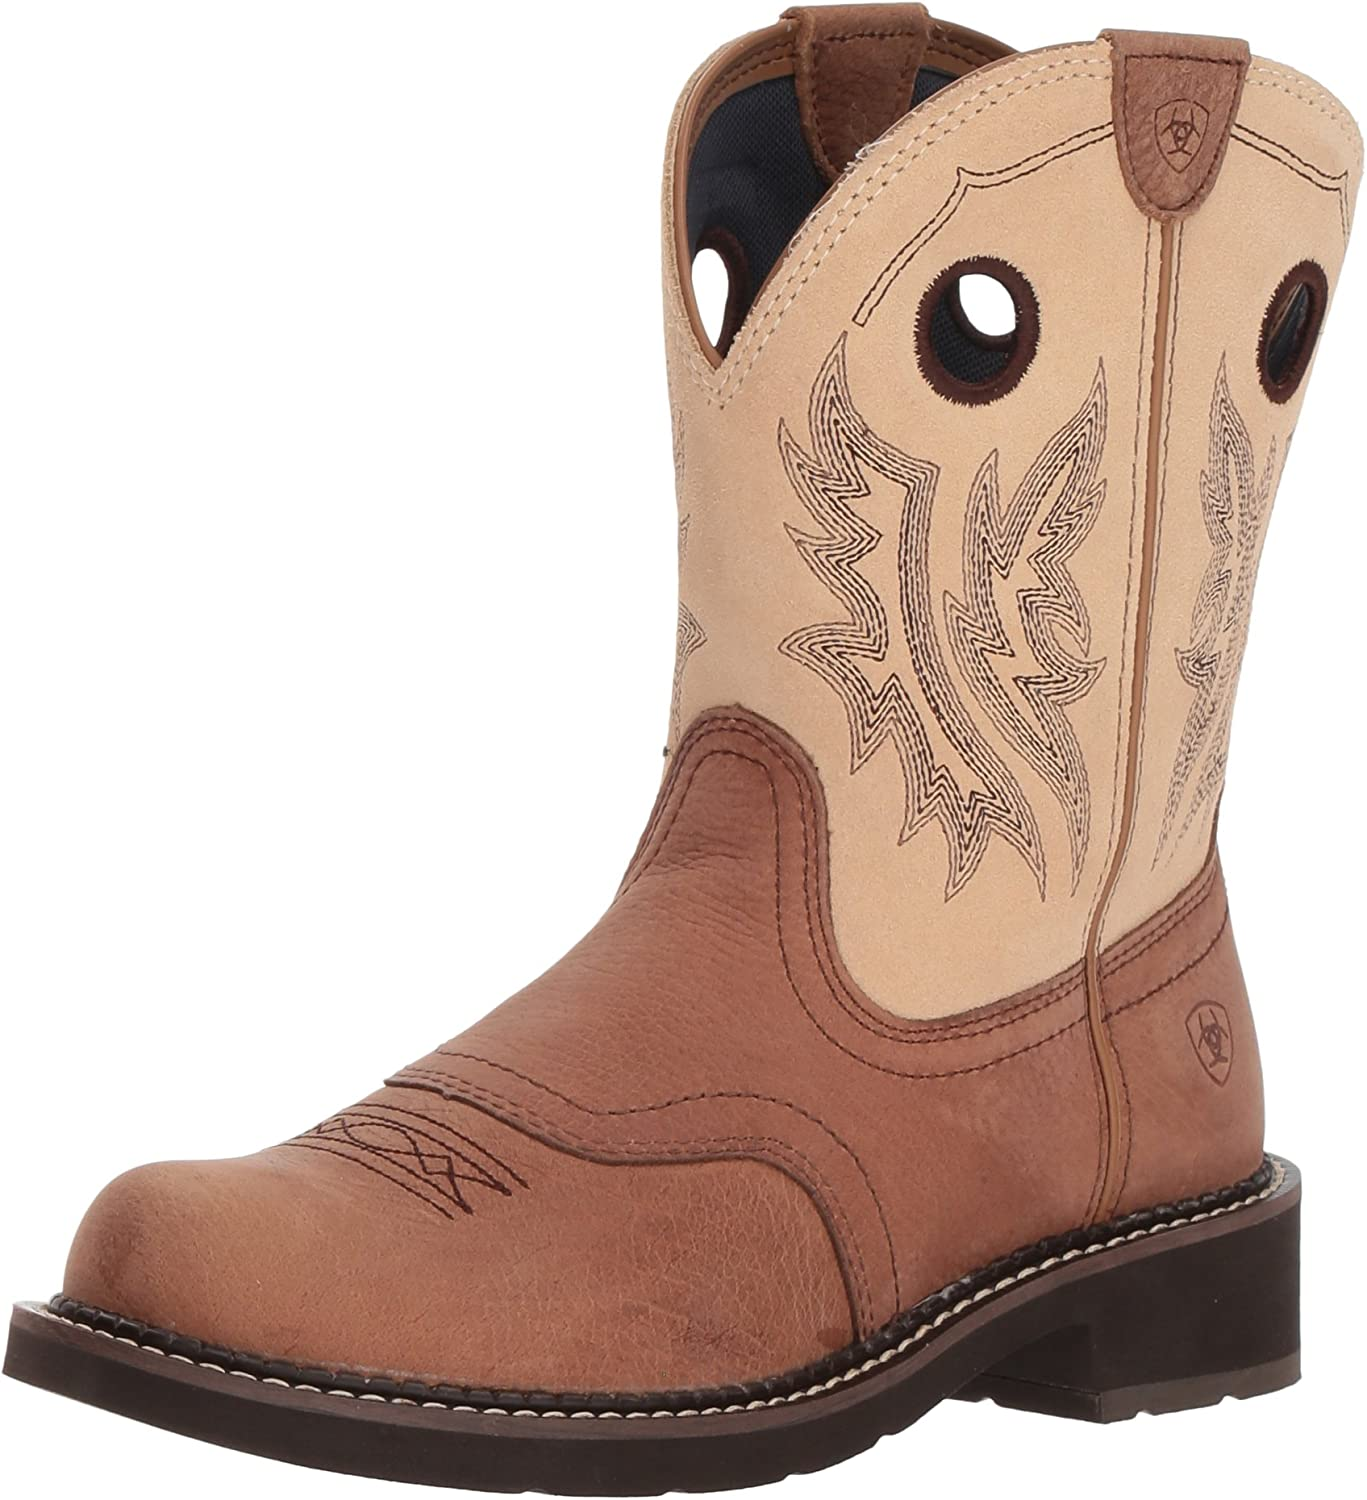 ARIAT Kvinnors Fatbebis Heritage Cowgirl Western Boot